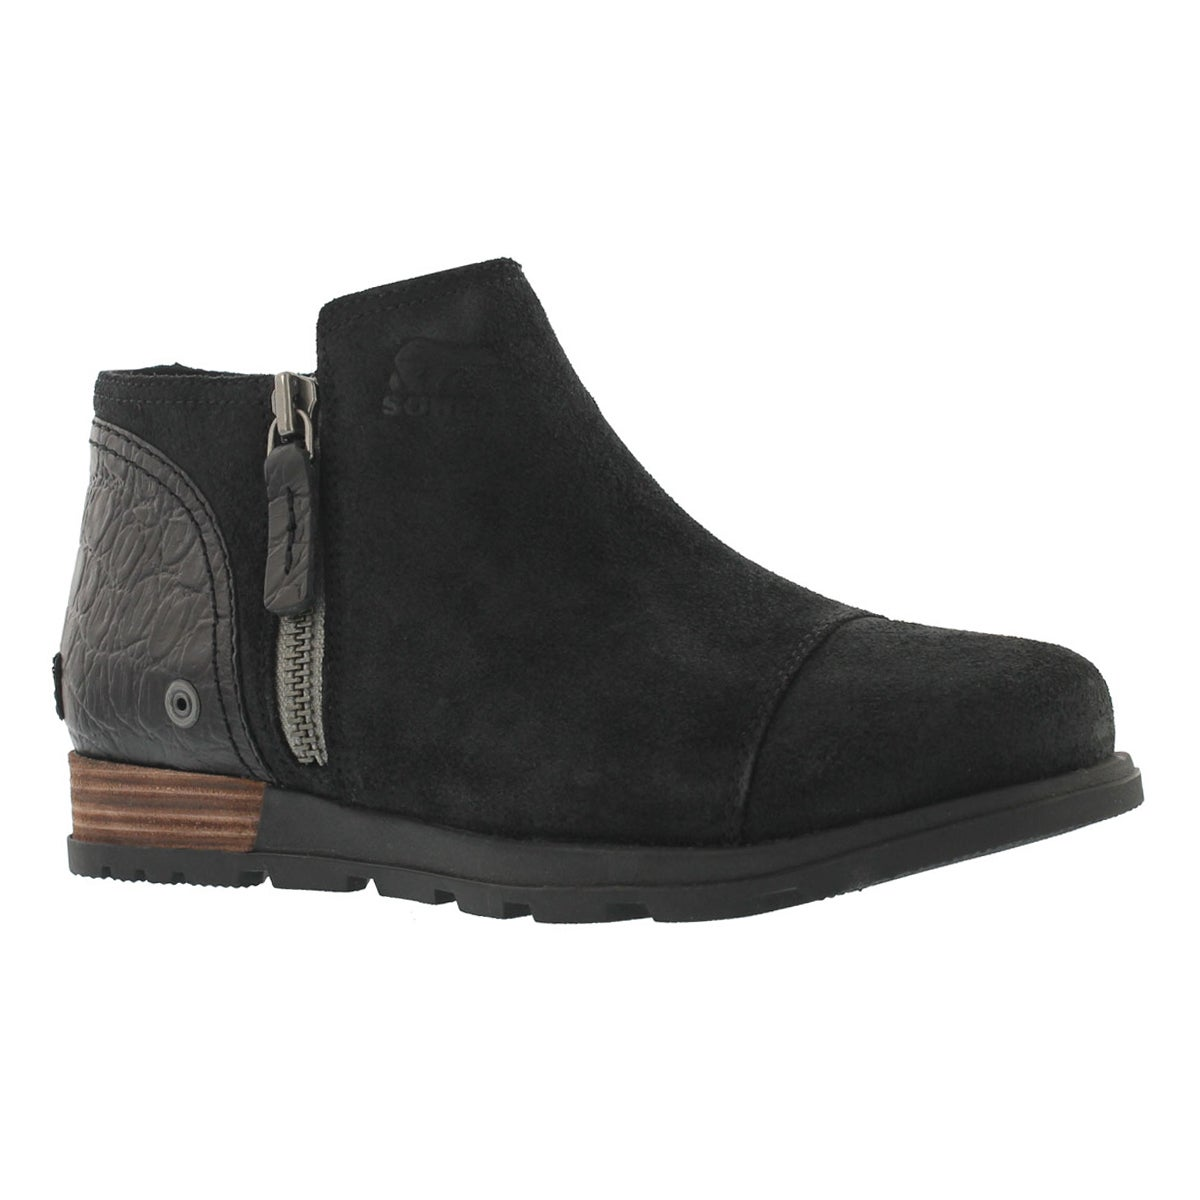 Lds Major Low black casual slip on